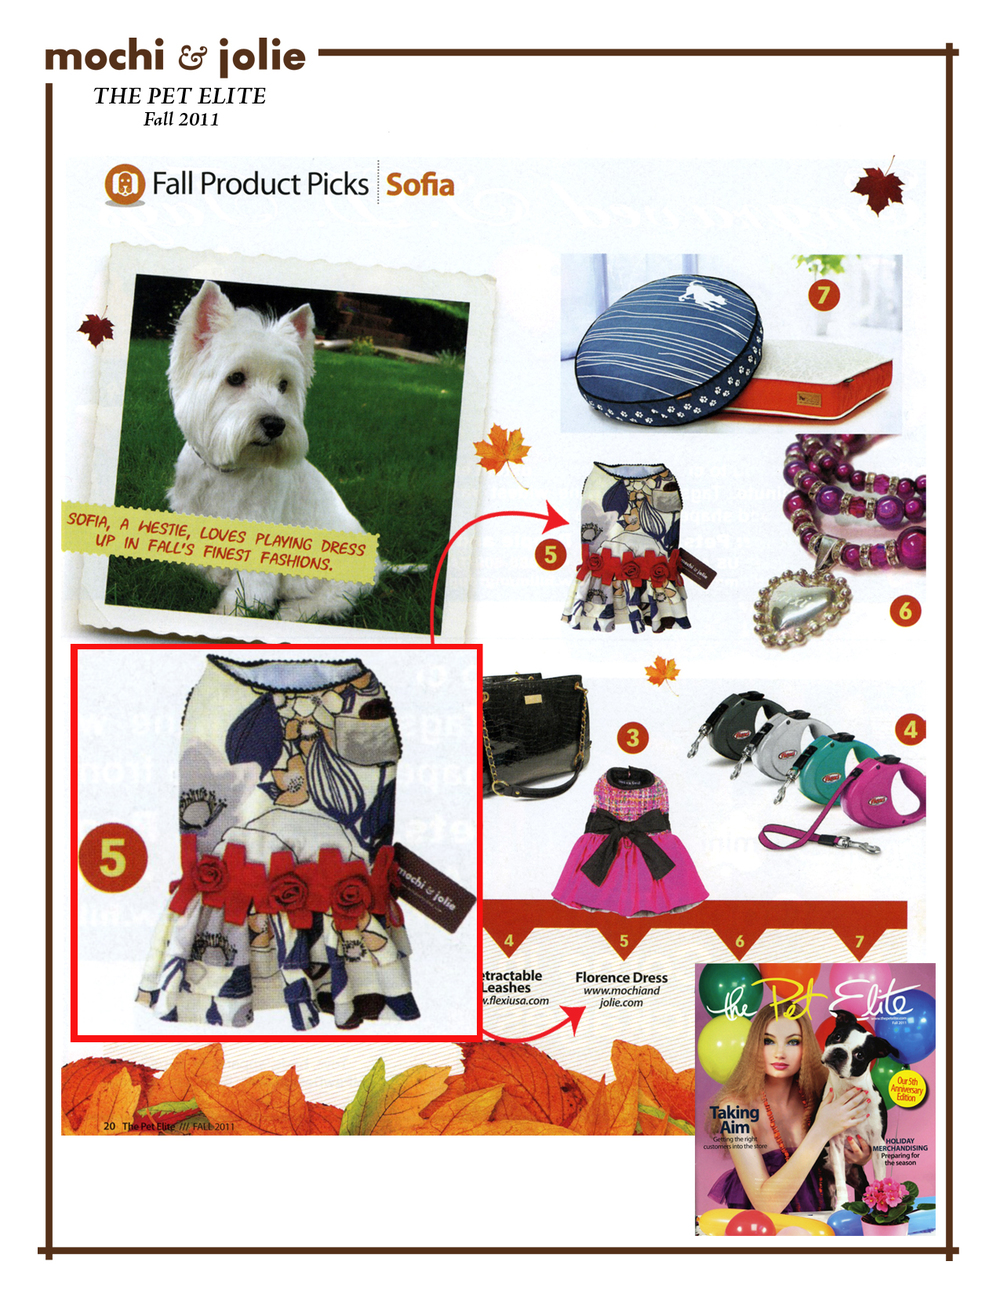 The Pet Elite (Fall 2011)